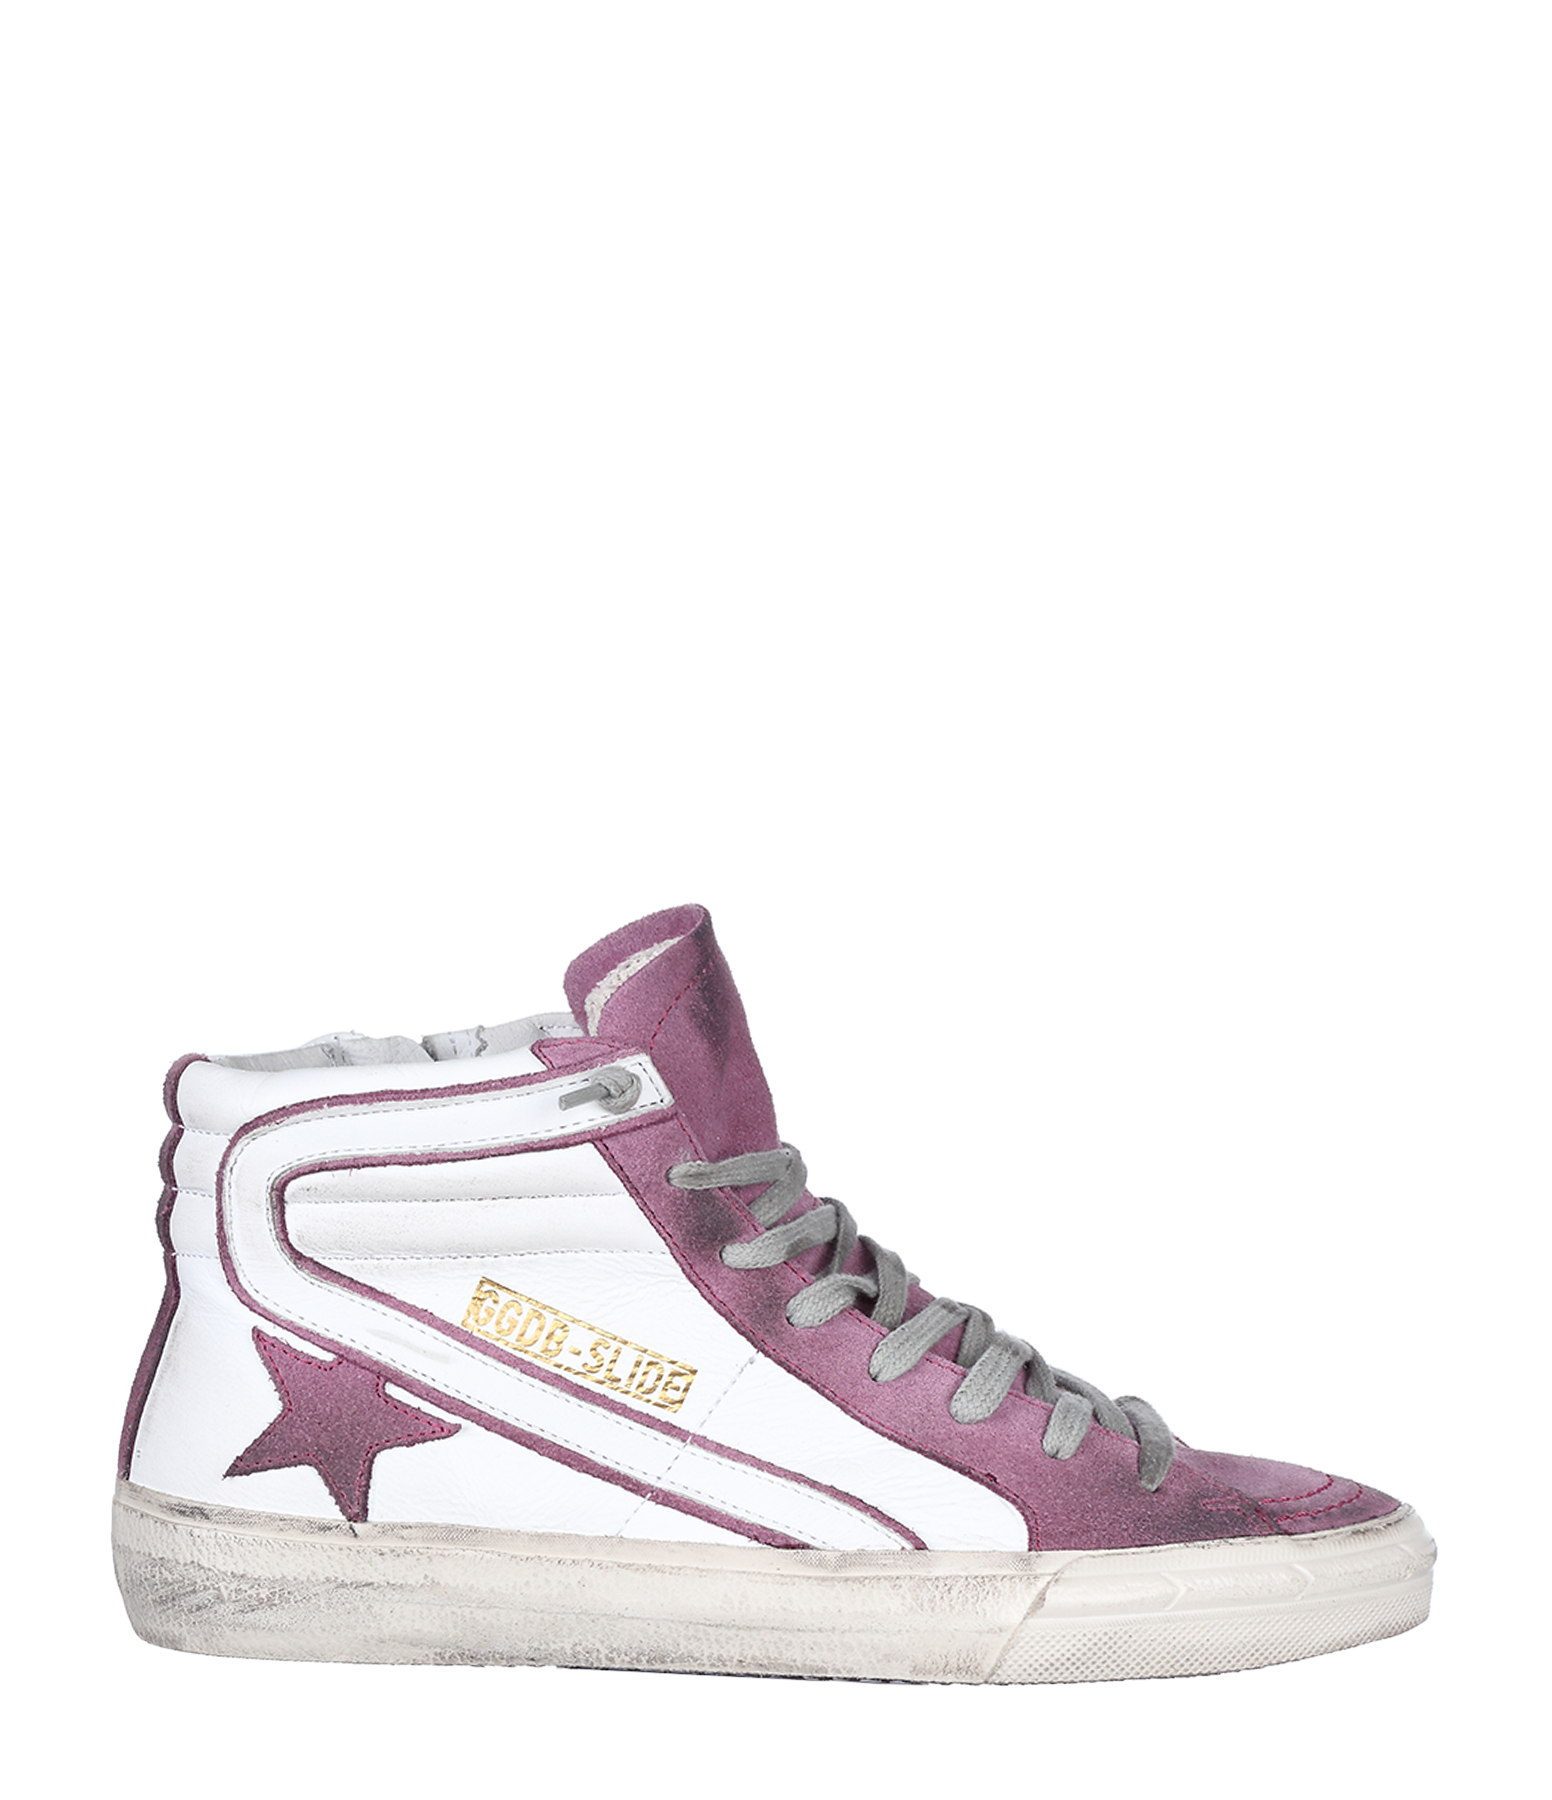 Sneakers Slide White Pink